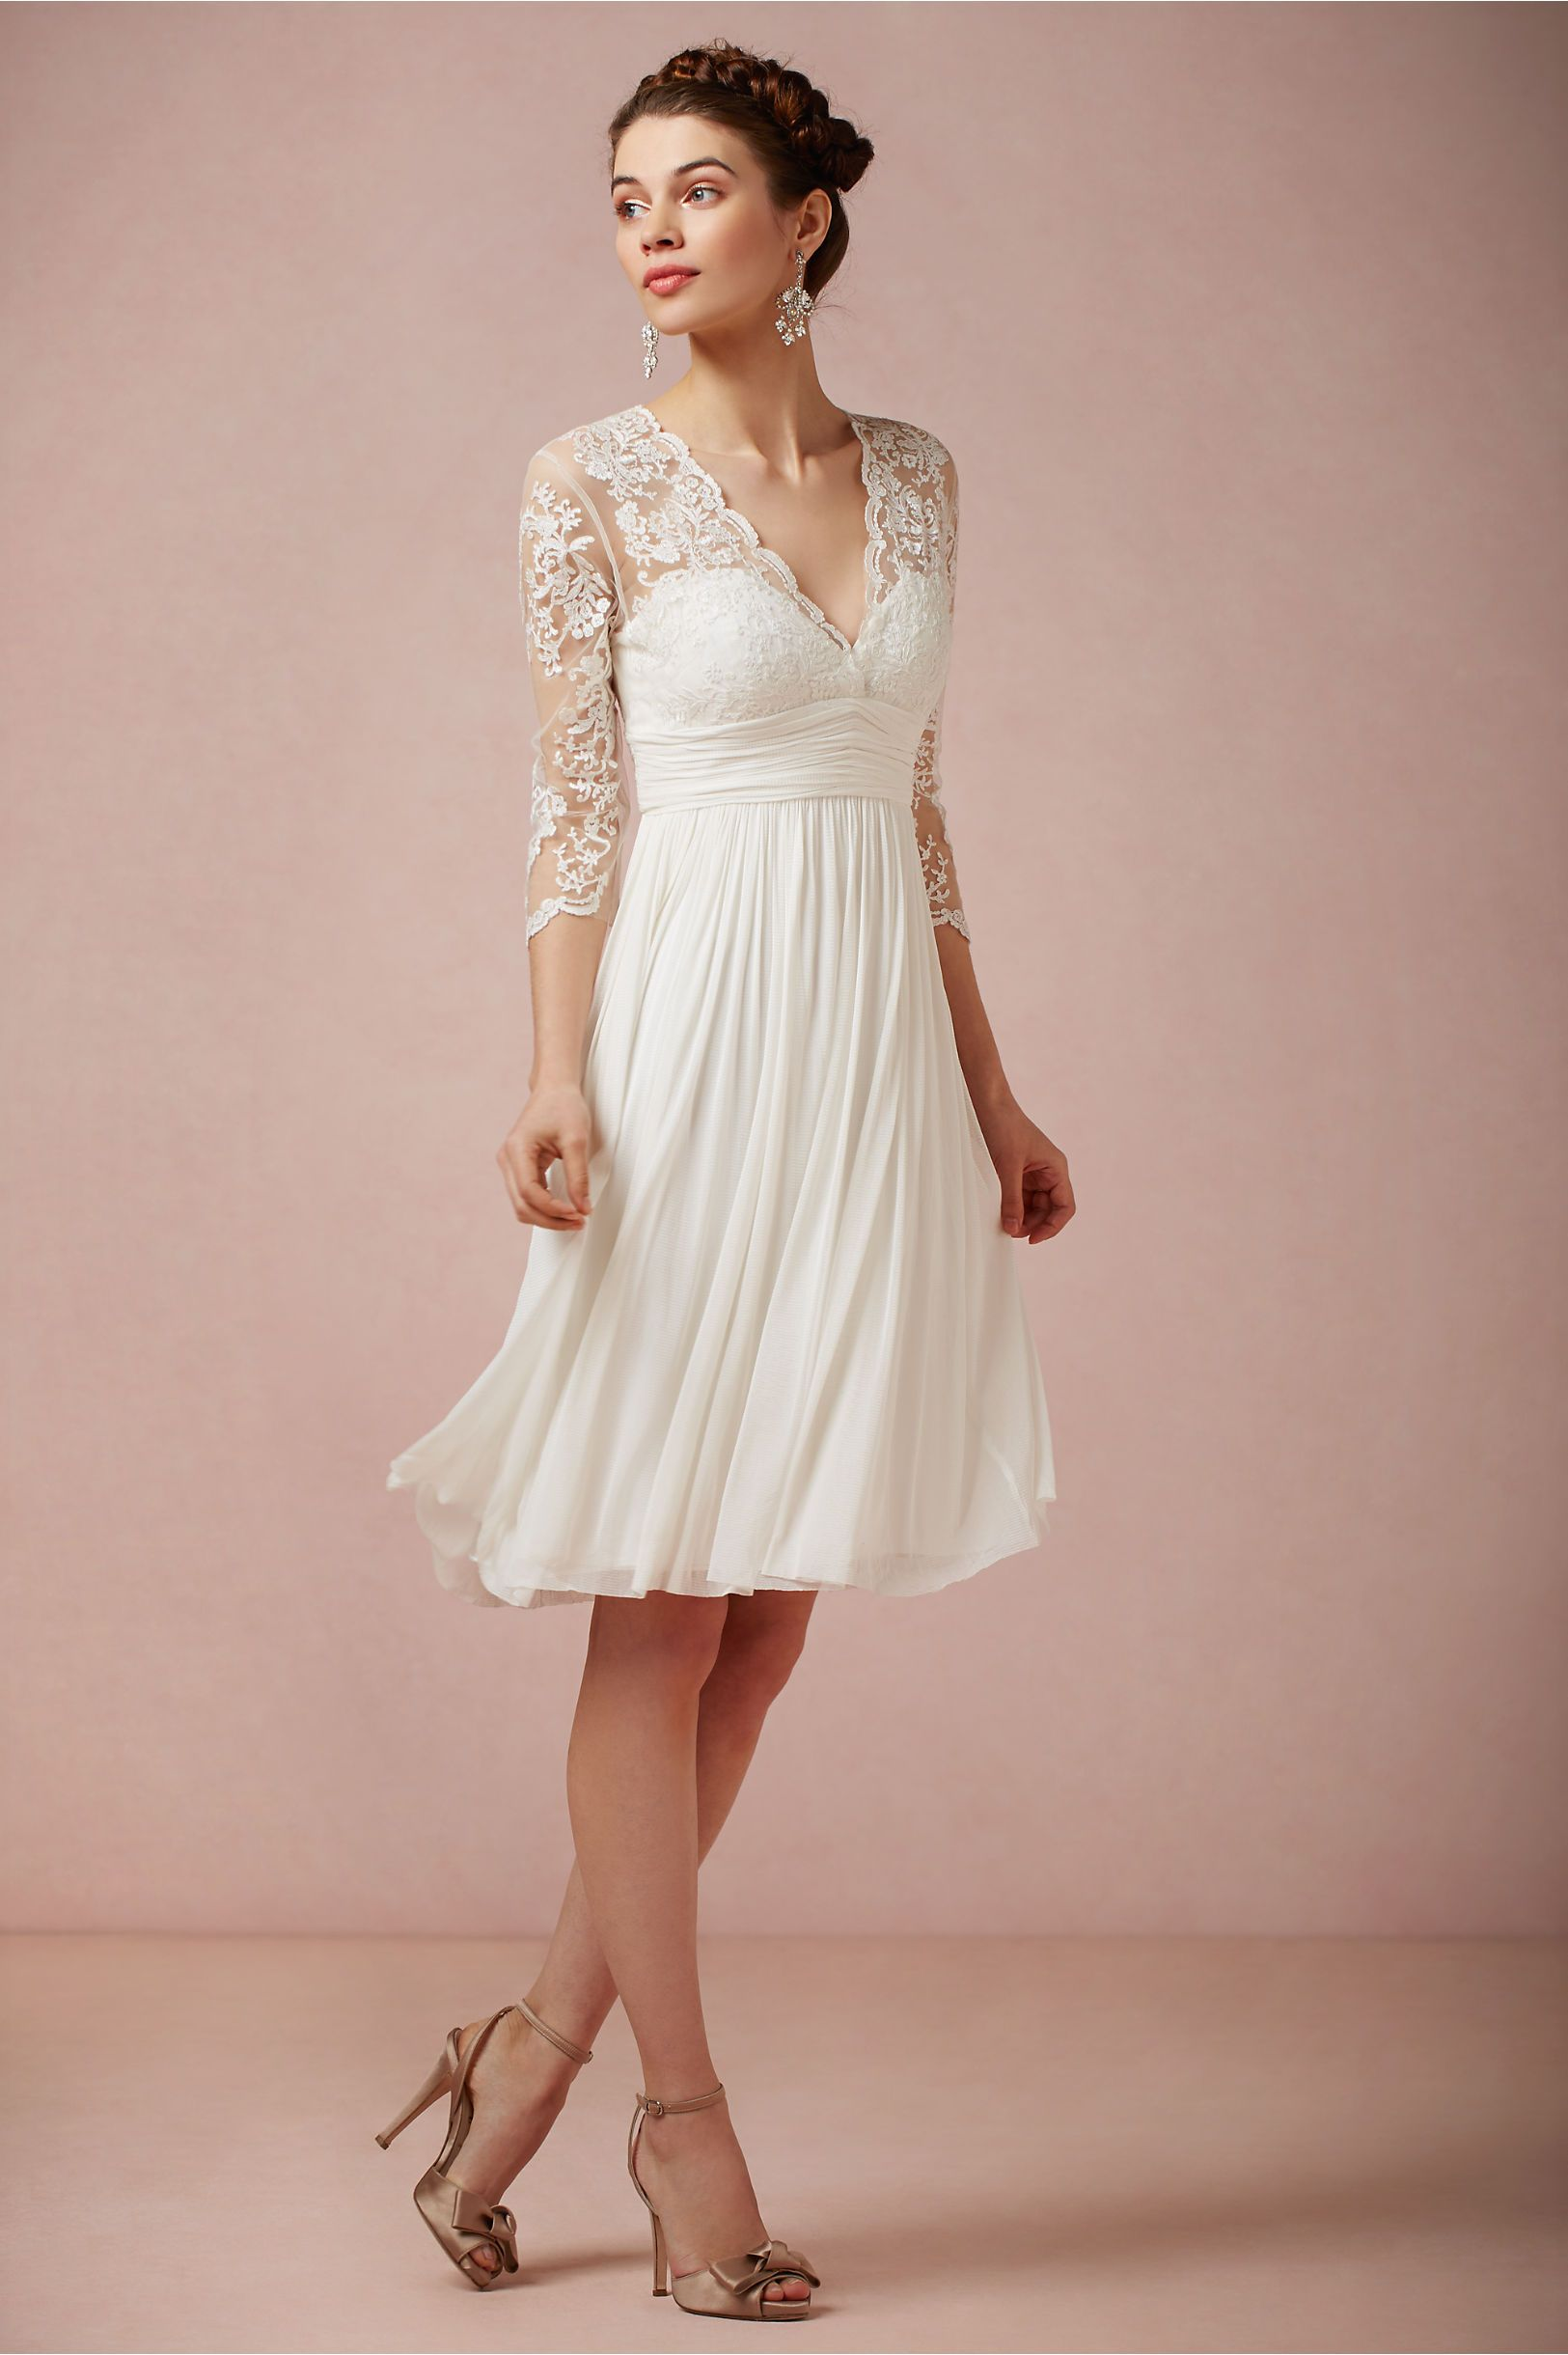 the perfect rehearsal dinner dress! | Bridal Jewelry + Accessories ...